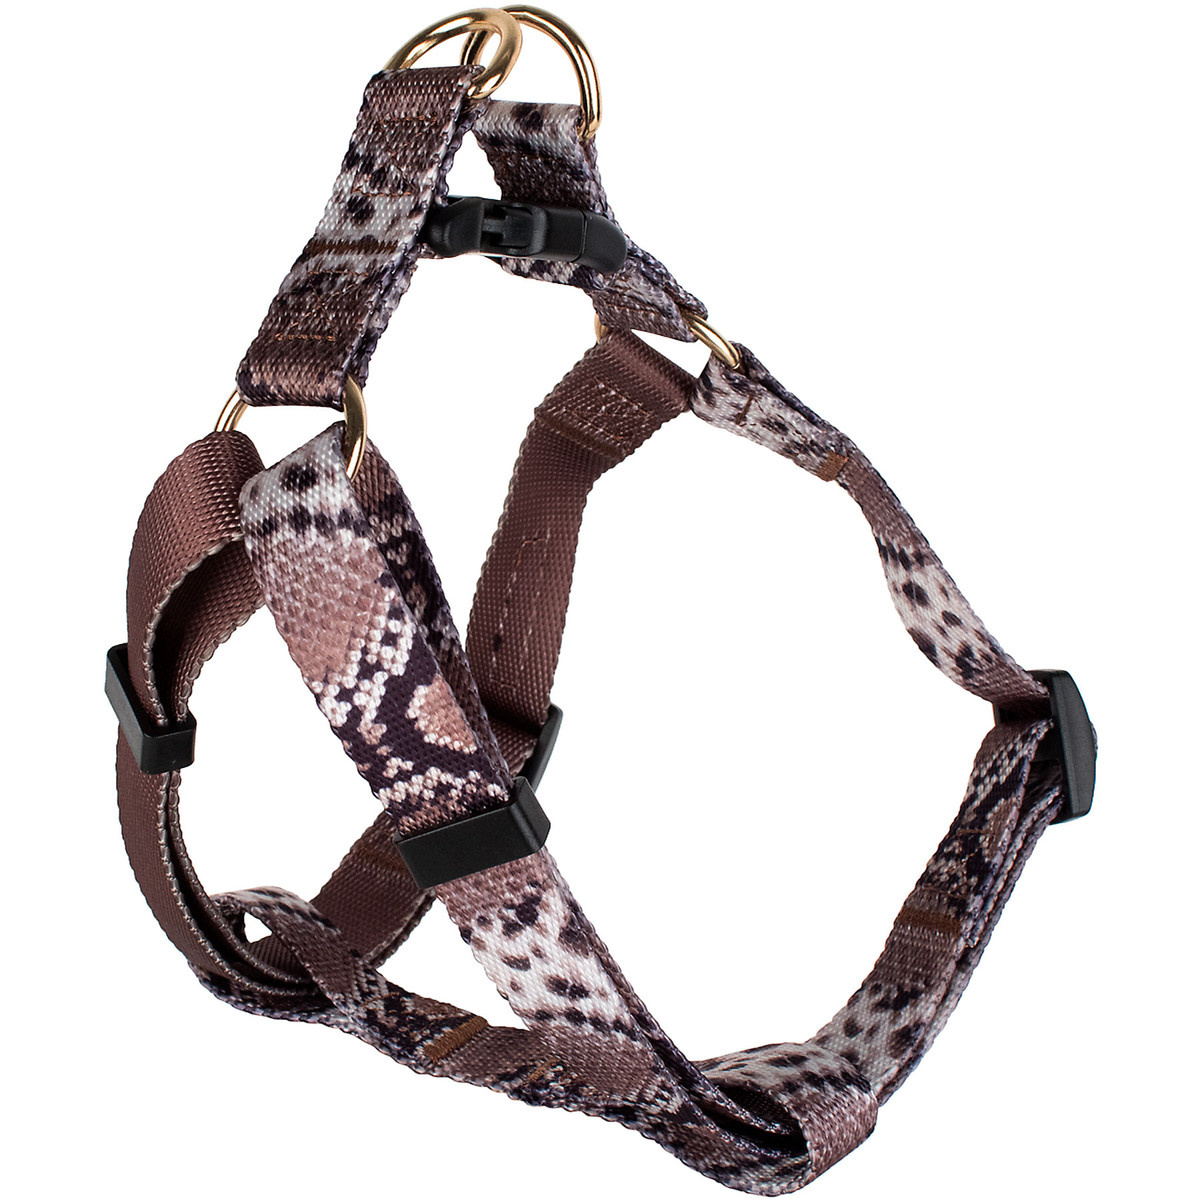 Boulevard Snake Dog Harness